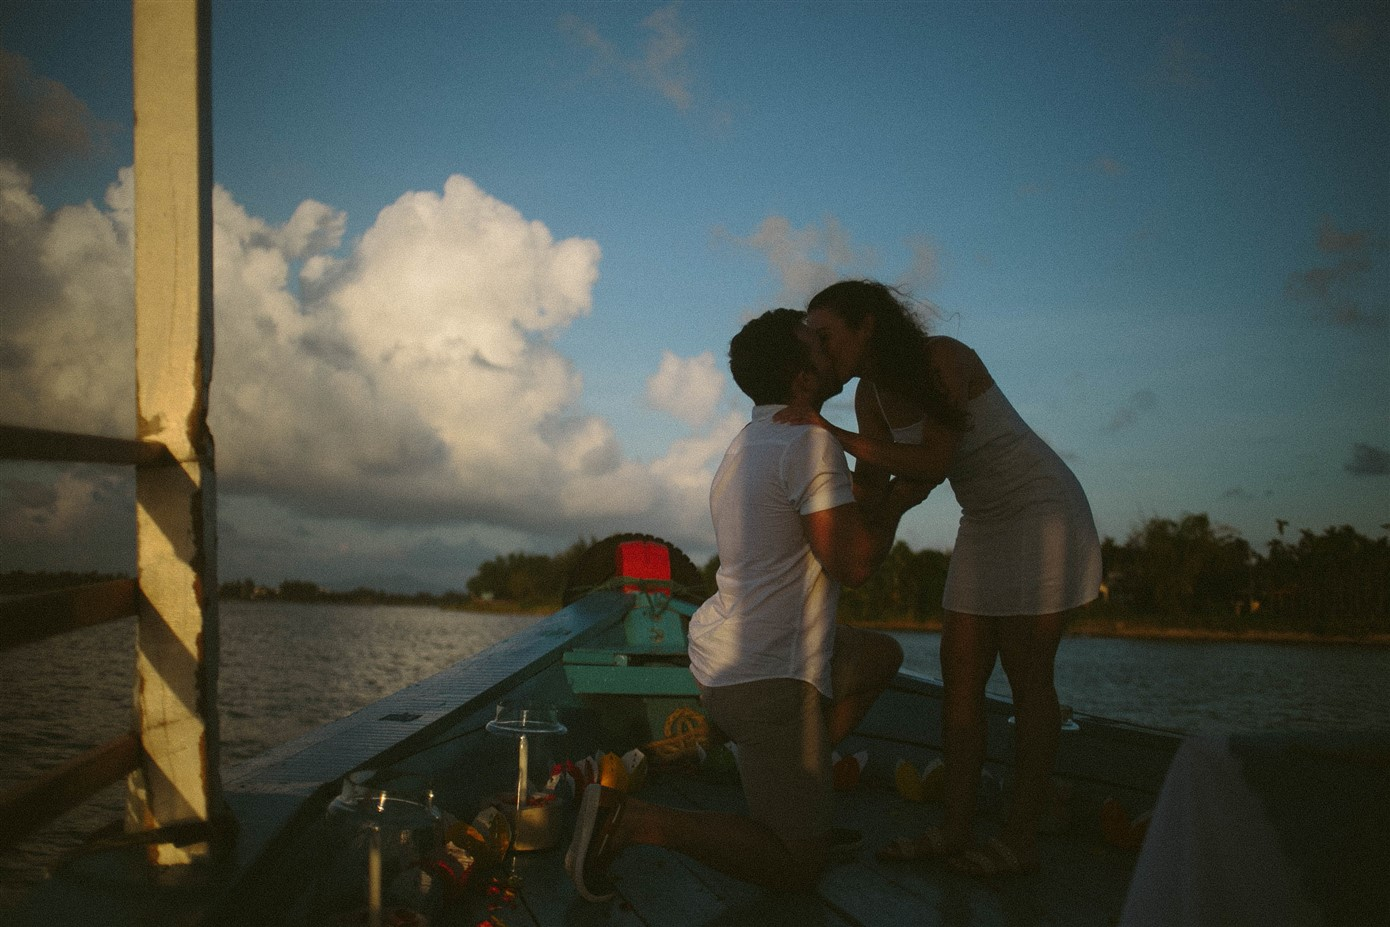 Propose photography